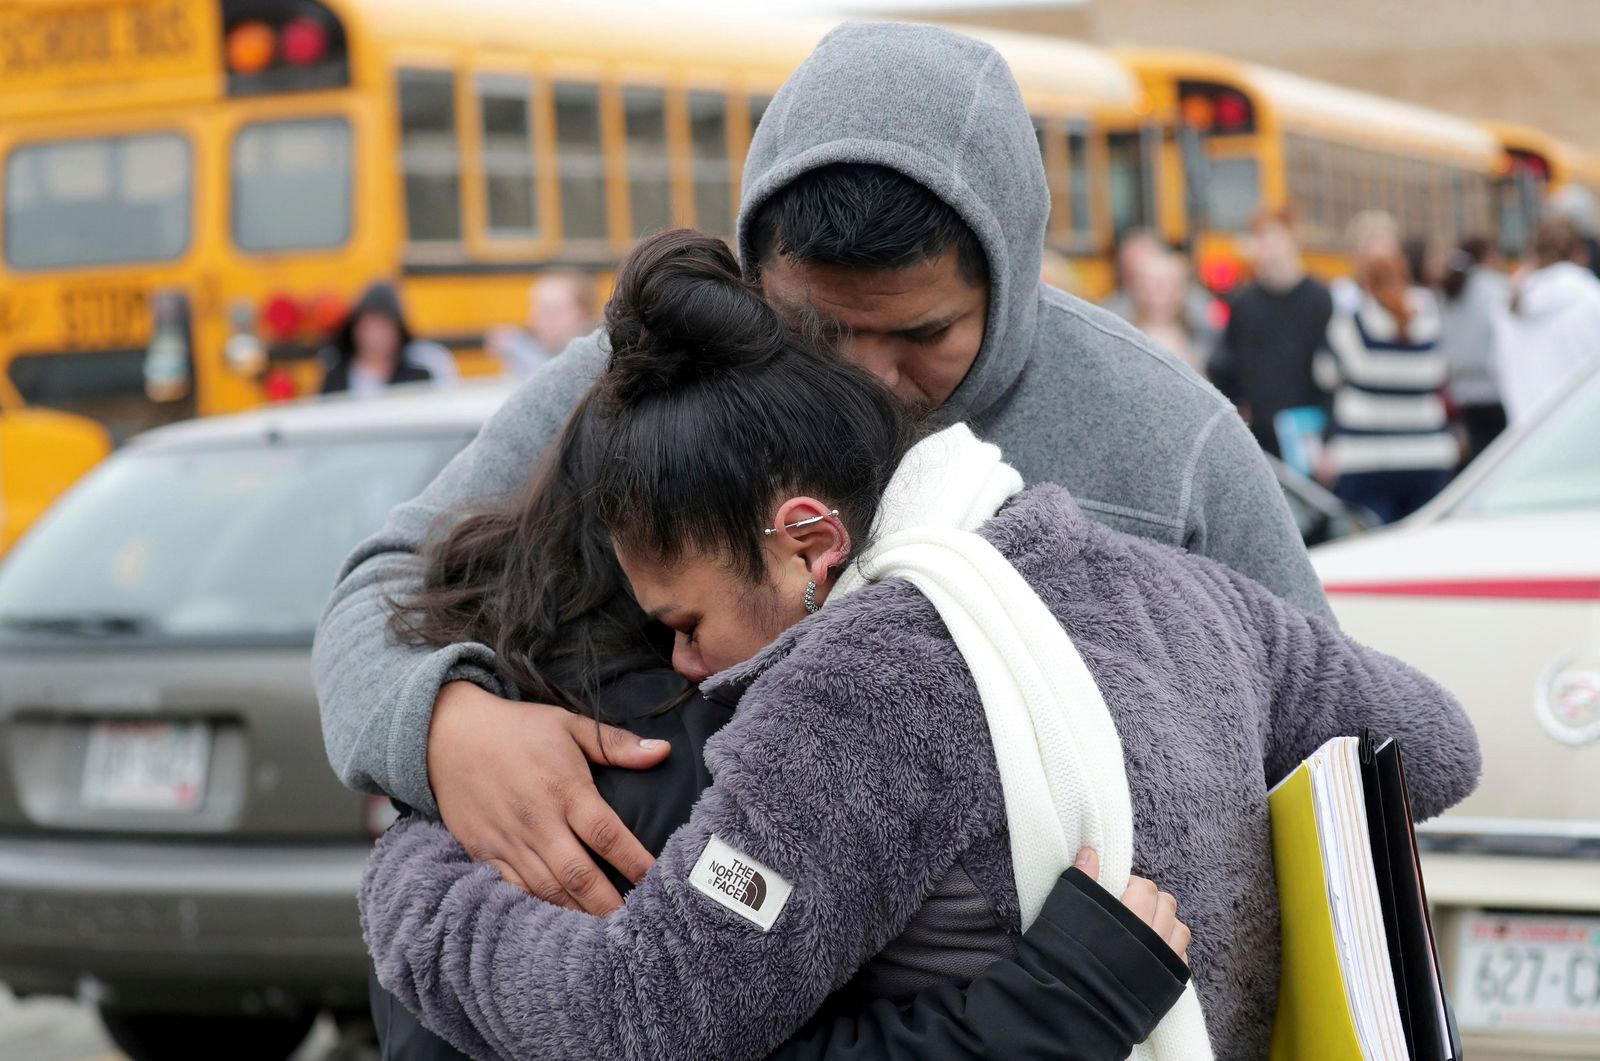 Becky Galvan, center, consoles her daughter, Ashley Galvan, a 15-year-old sophomore, with her father Jose Chavez outside Waukesha South High School in Waukesha on Monday, Dec. 2, 2019. (Mike De Sisti/Milwaukee Journal-Sentinel via AP)